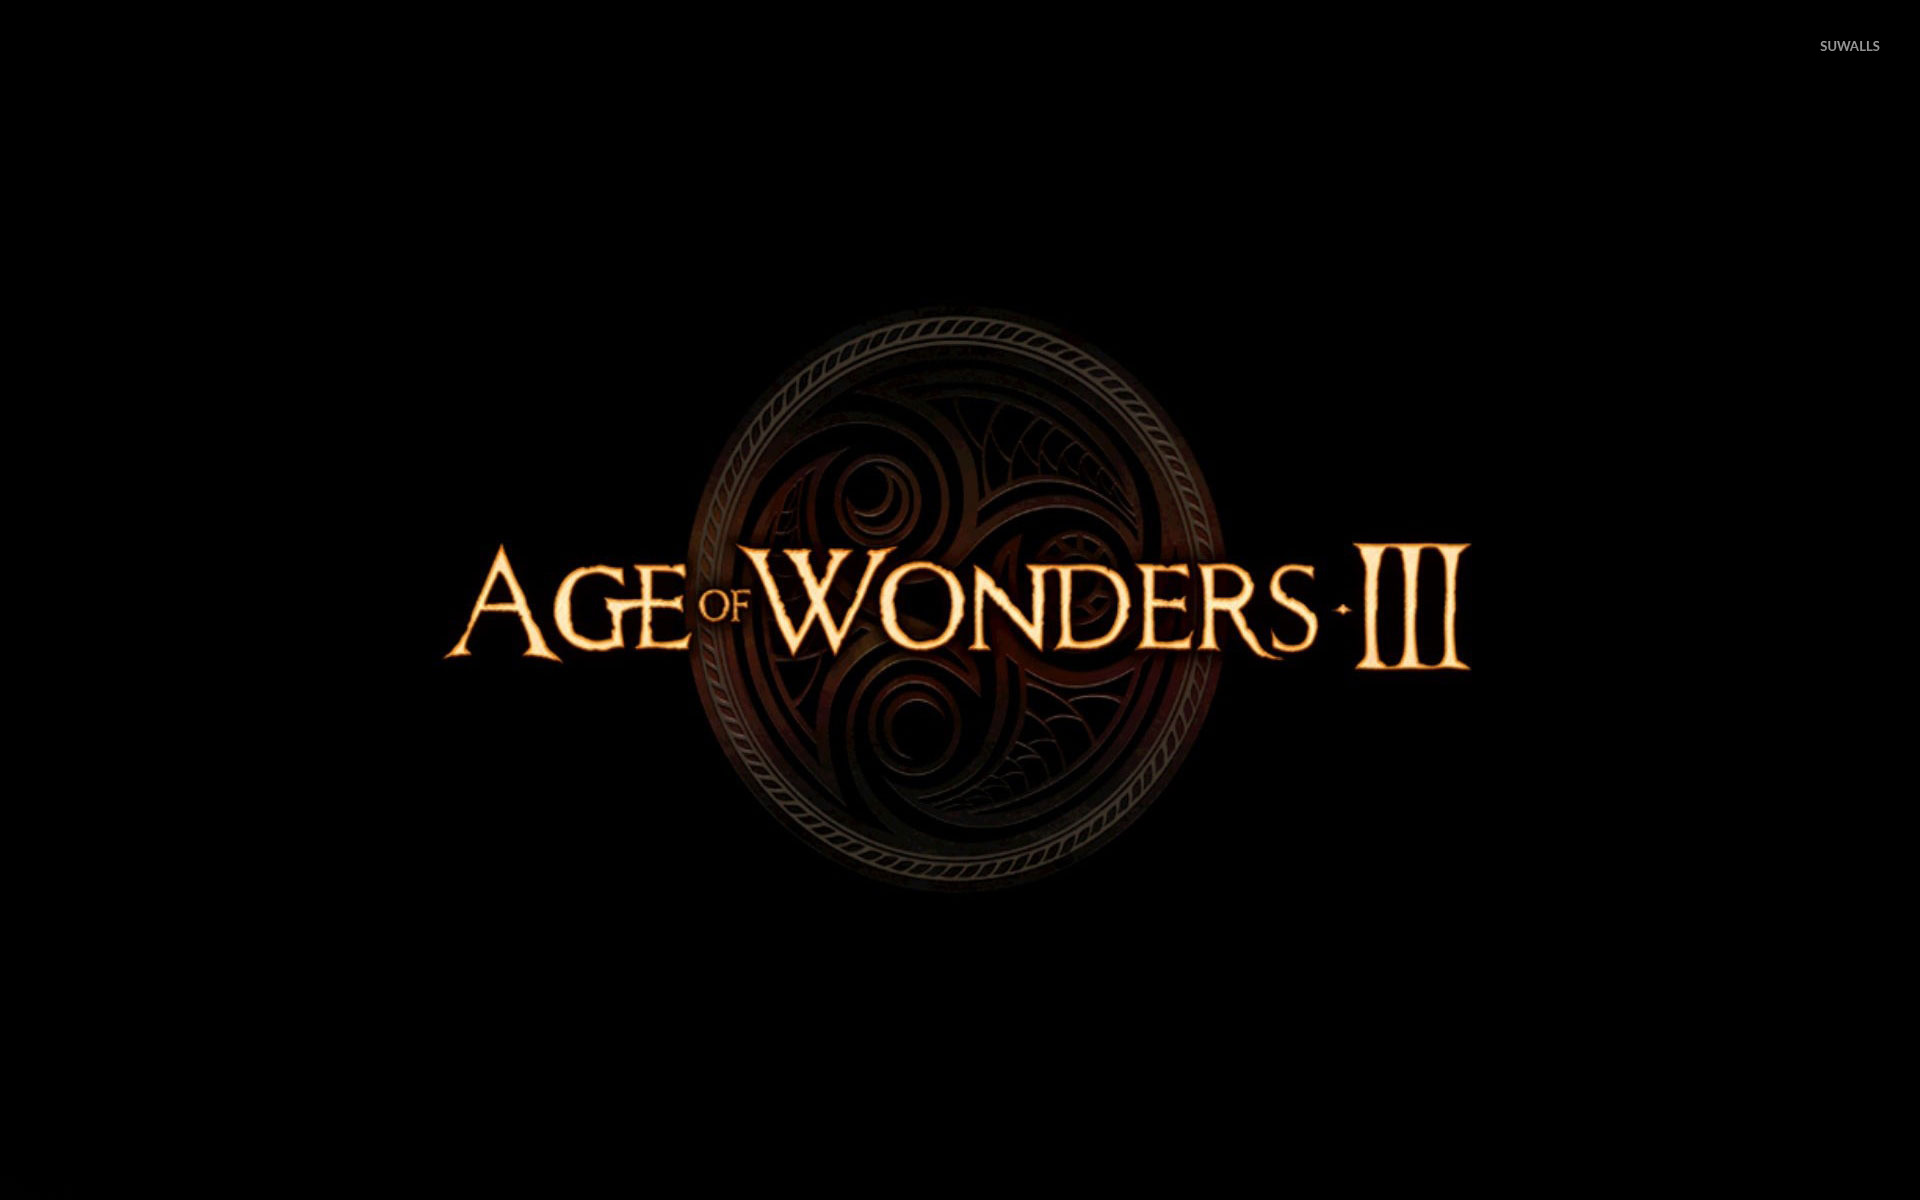 Age Of Wonders Iii Wallpaper Game Wallpapers 23947